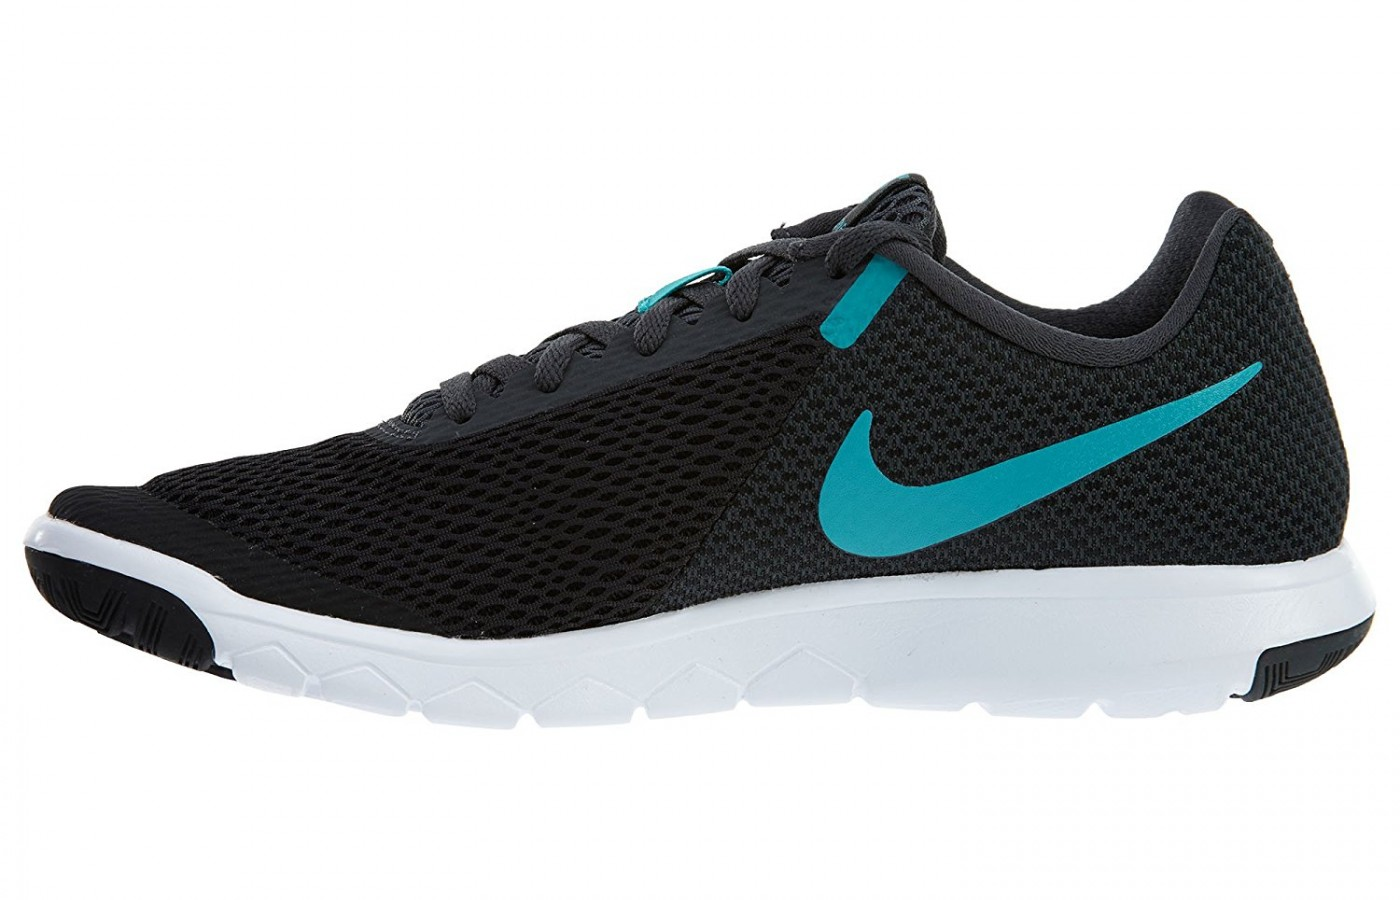 e2b2243c474 ... Nike Flex Experience RN 6  the comfort and style of this shoe is what runners  enjoy most ...